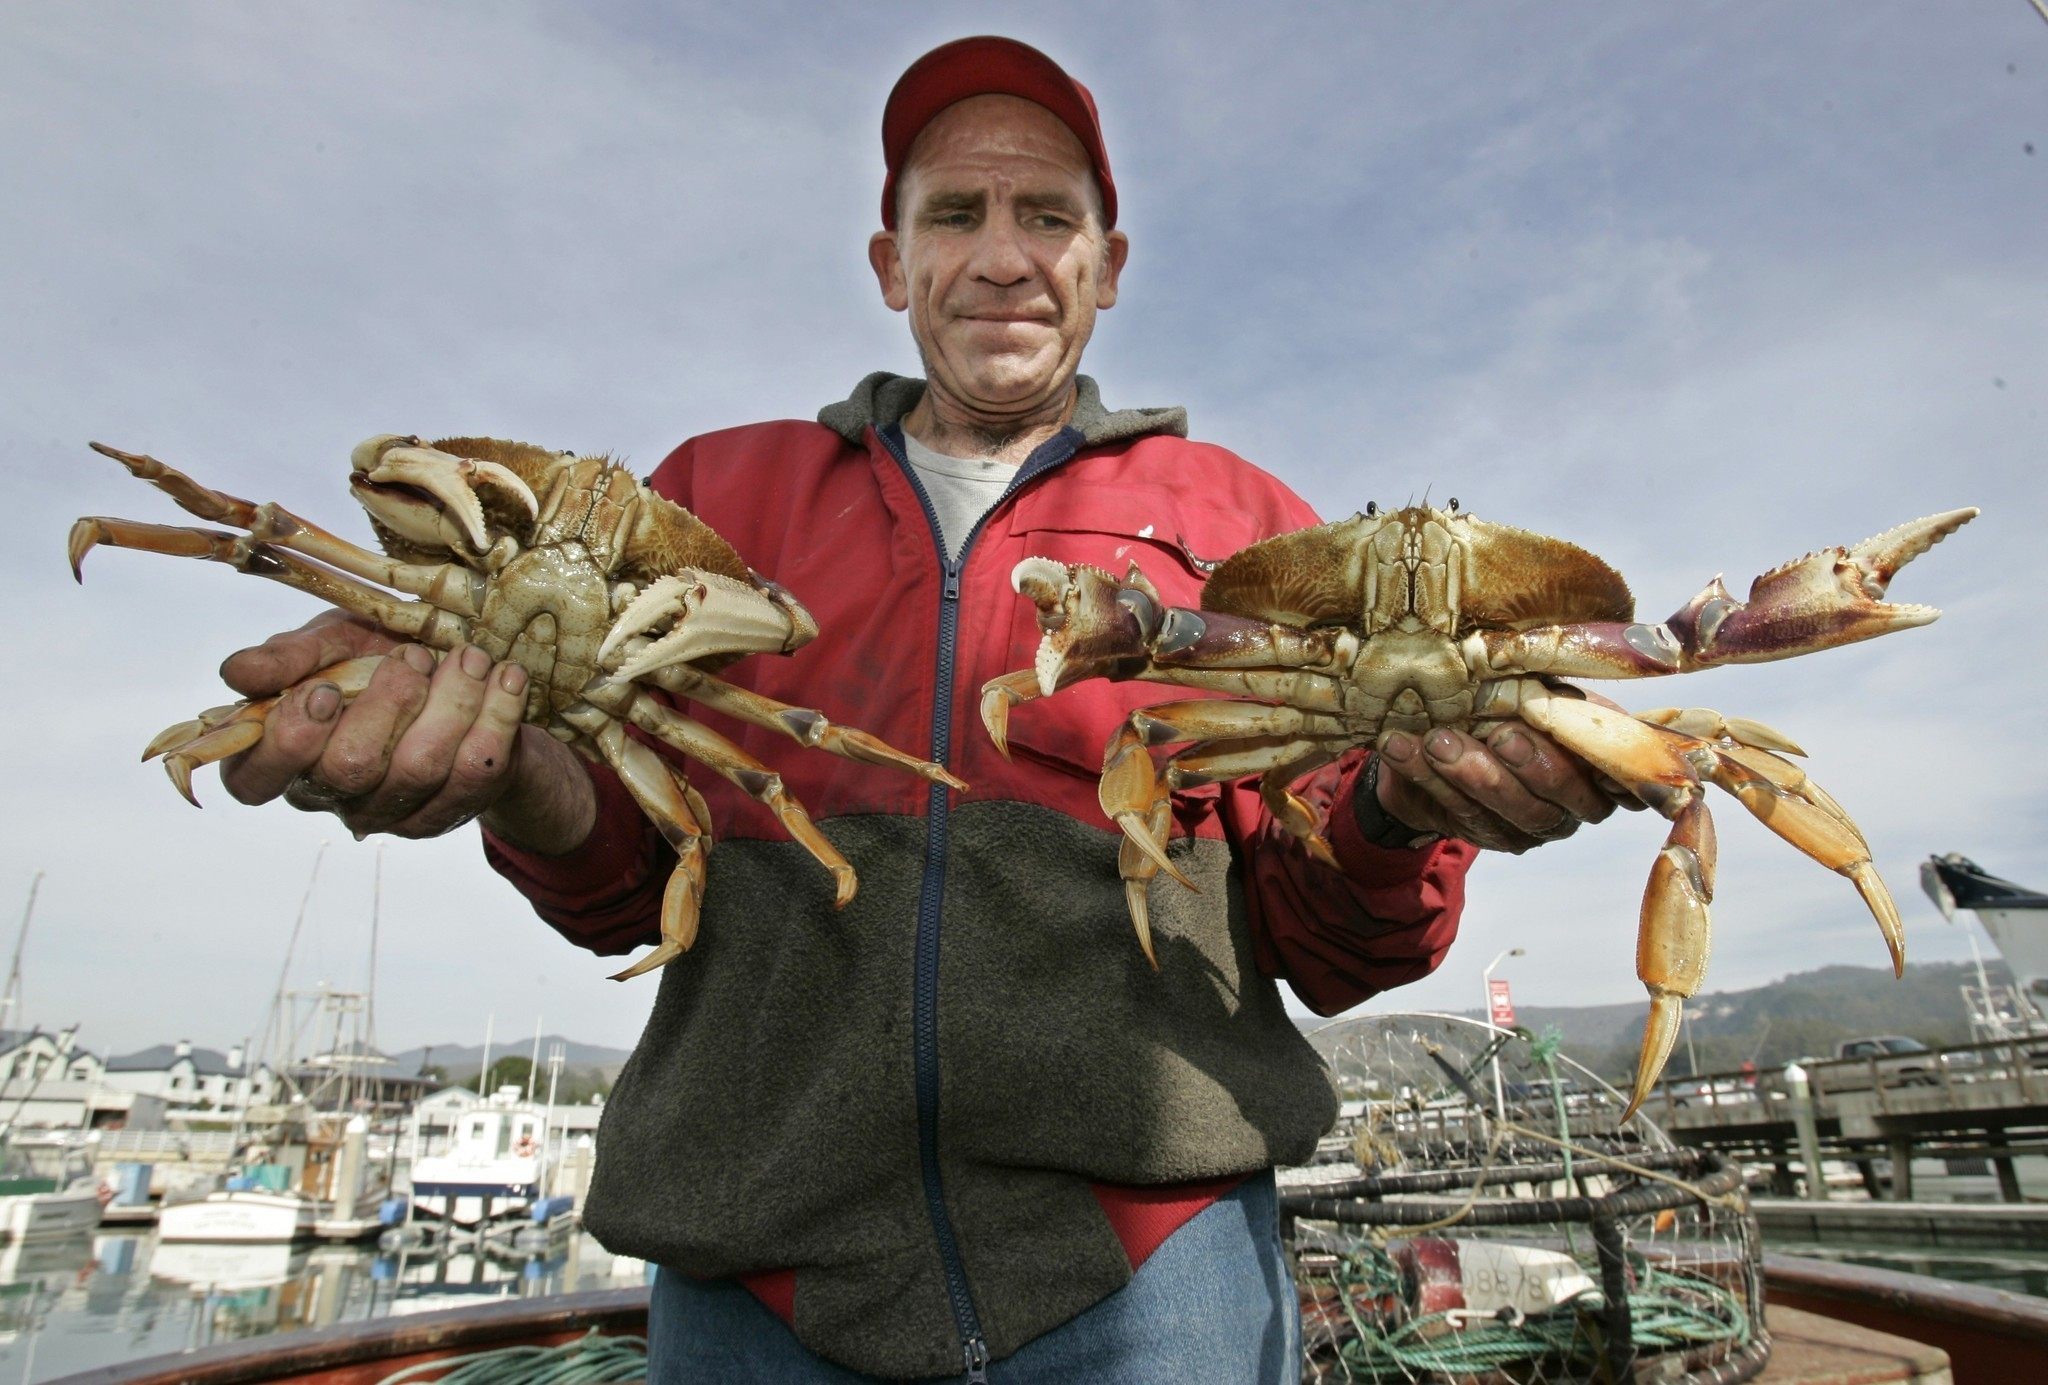 Toxic algae delays california 39 s dungeness crab season la for Crab fishing game